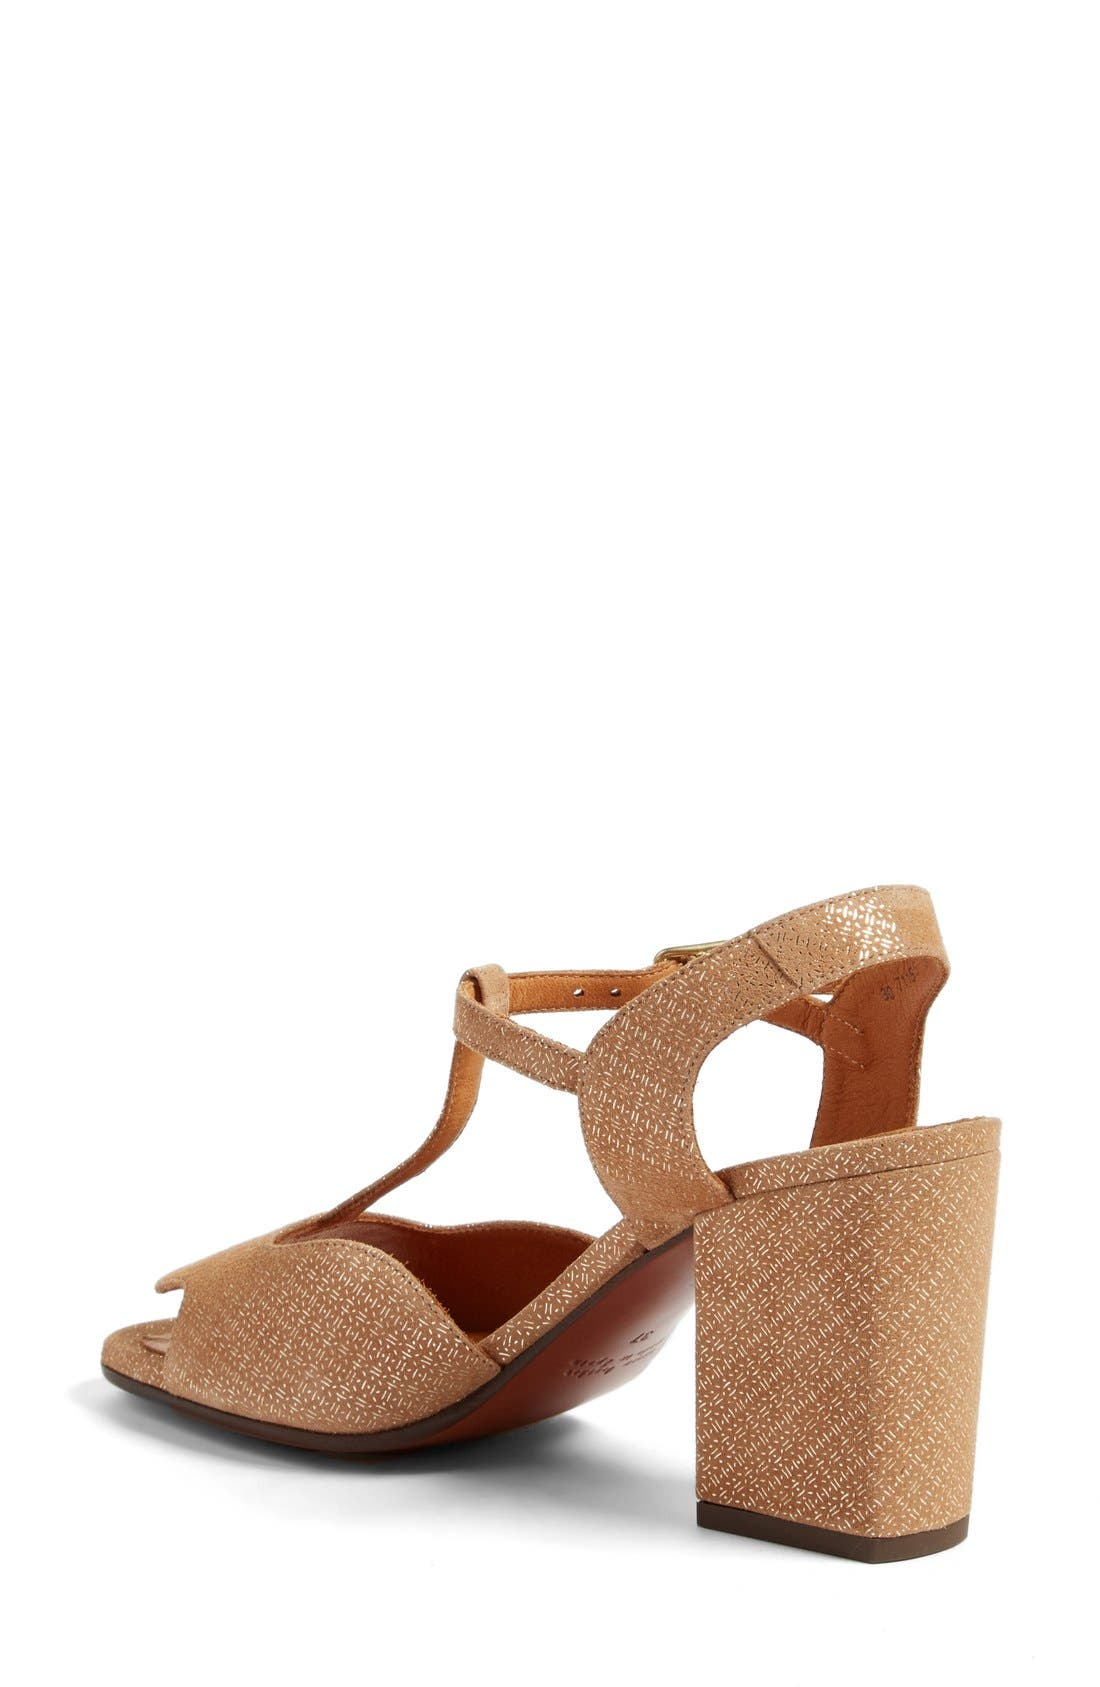 Birthe T-Strap Sandal,                             Alternate thumbnail 2, color,